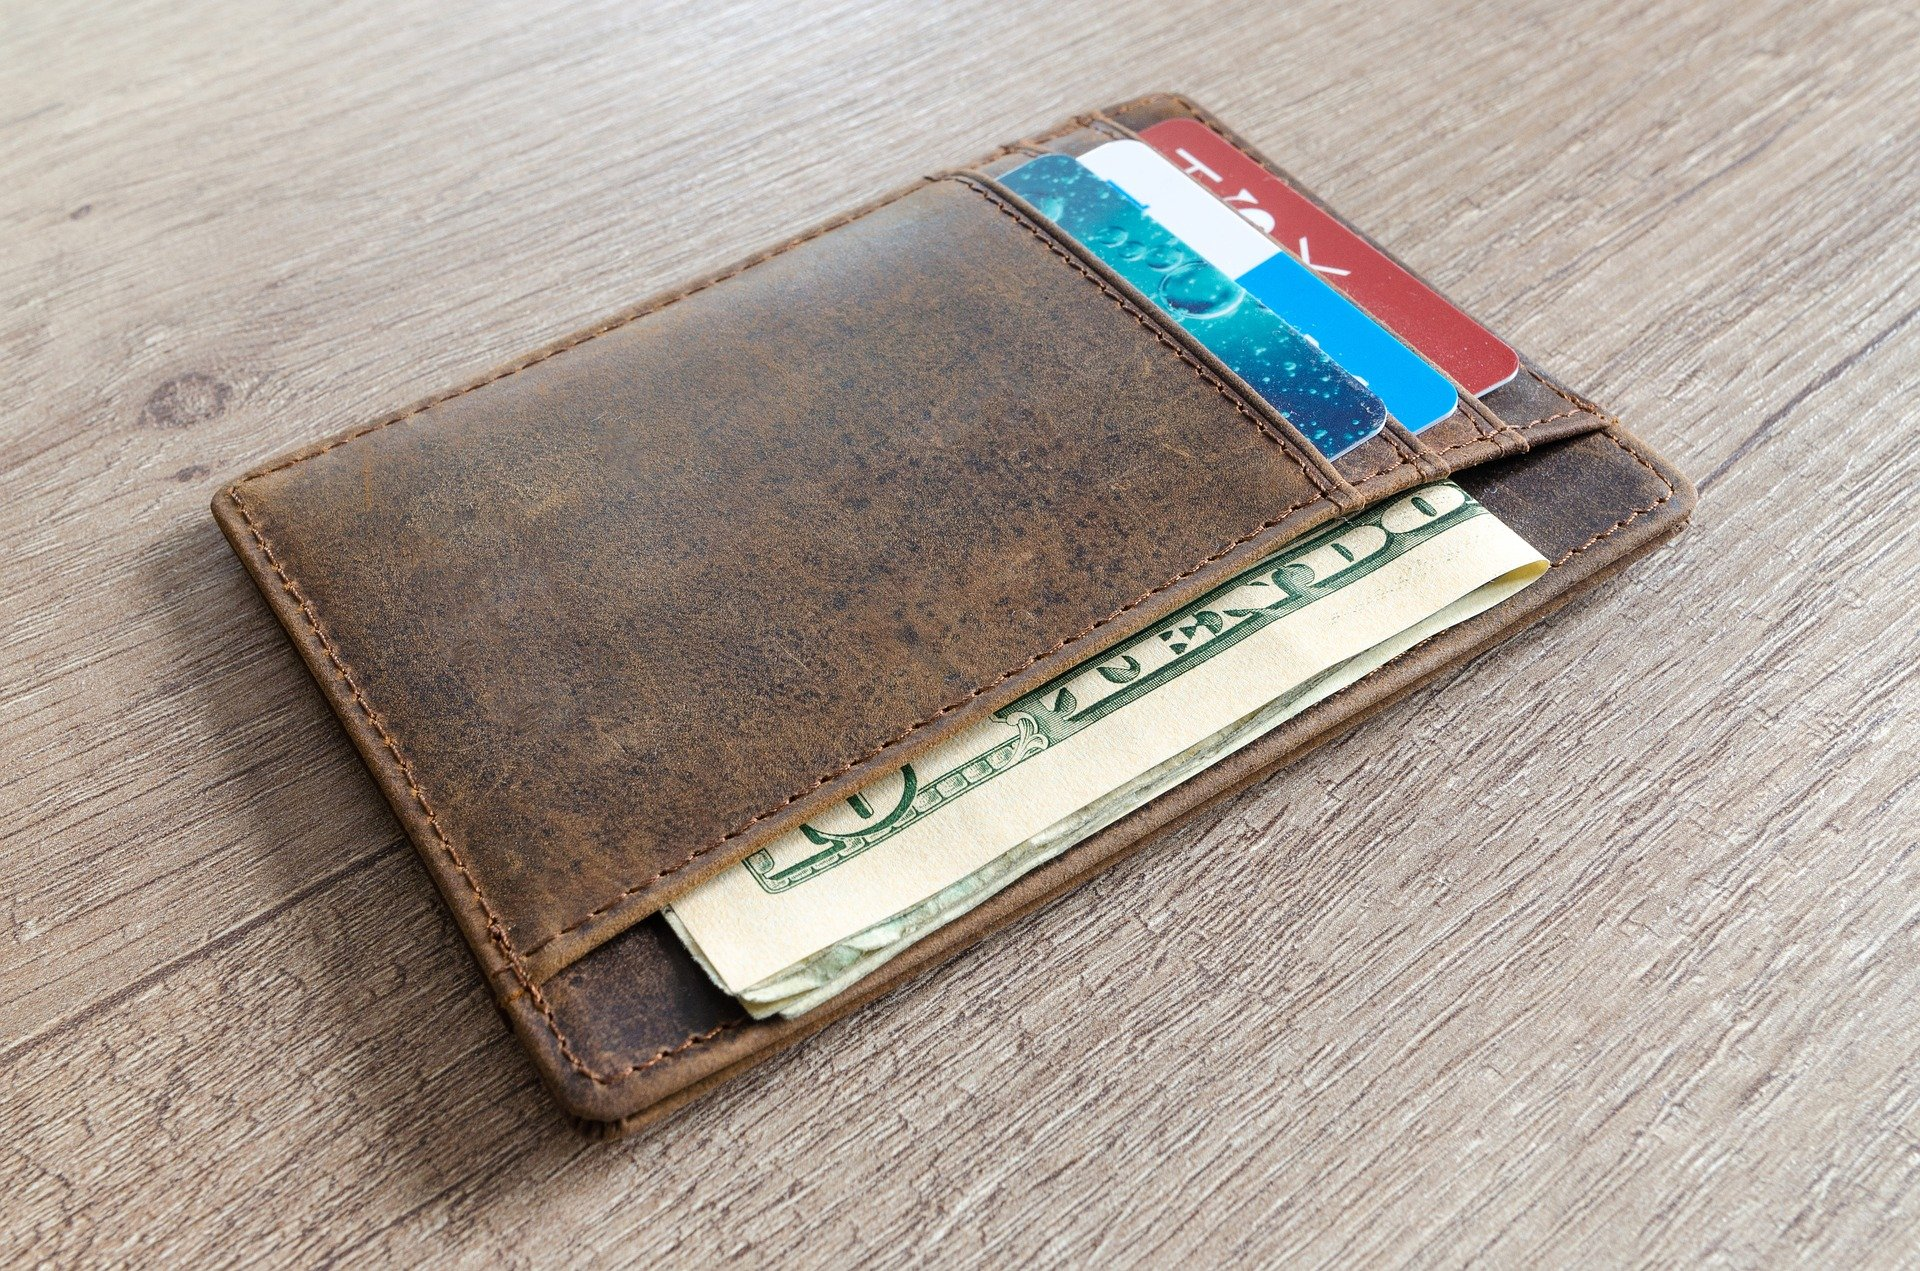 Cash and Card in a Wallet - VeteranCarDonations.org